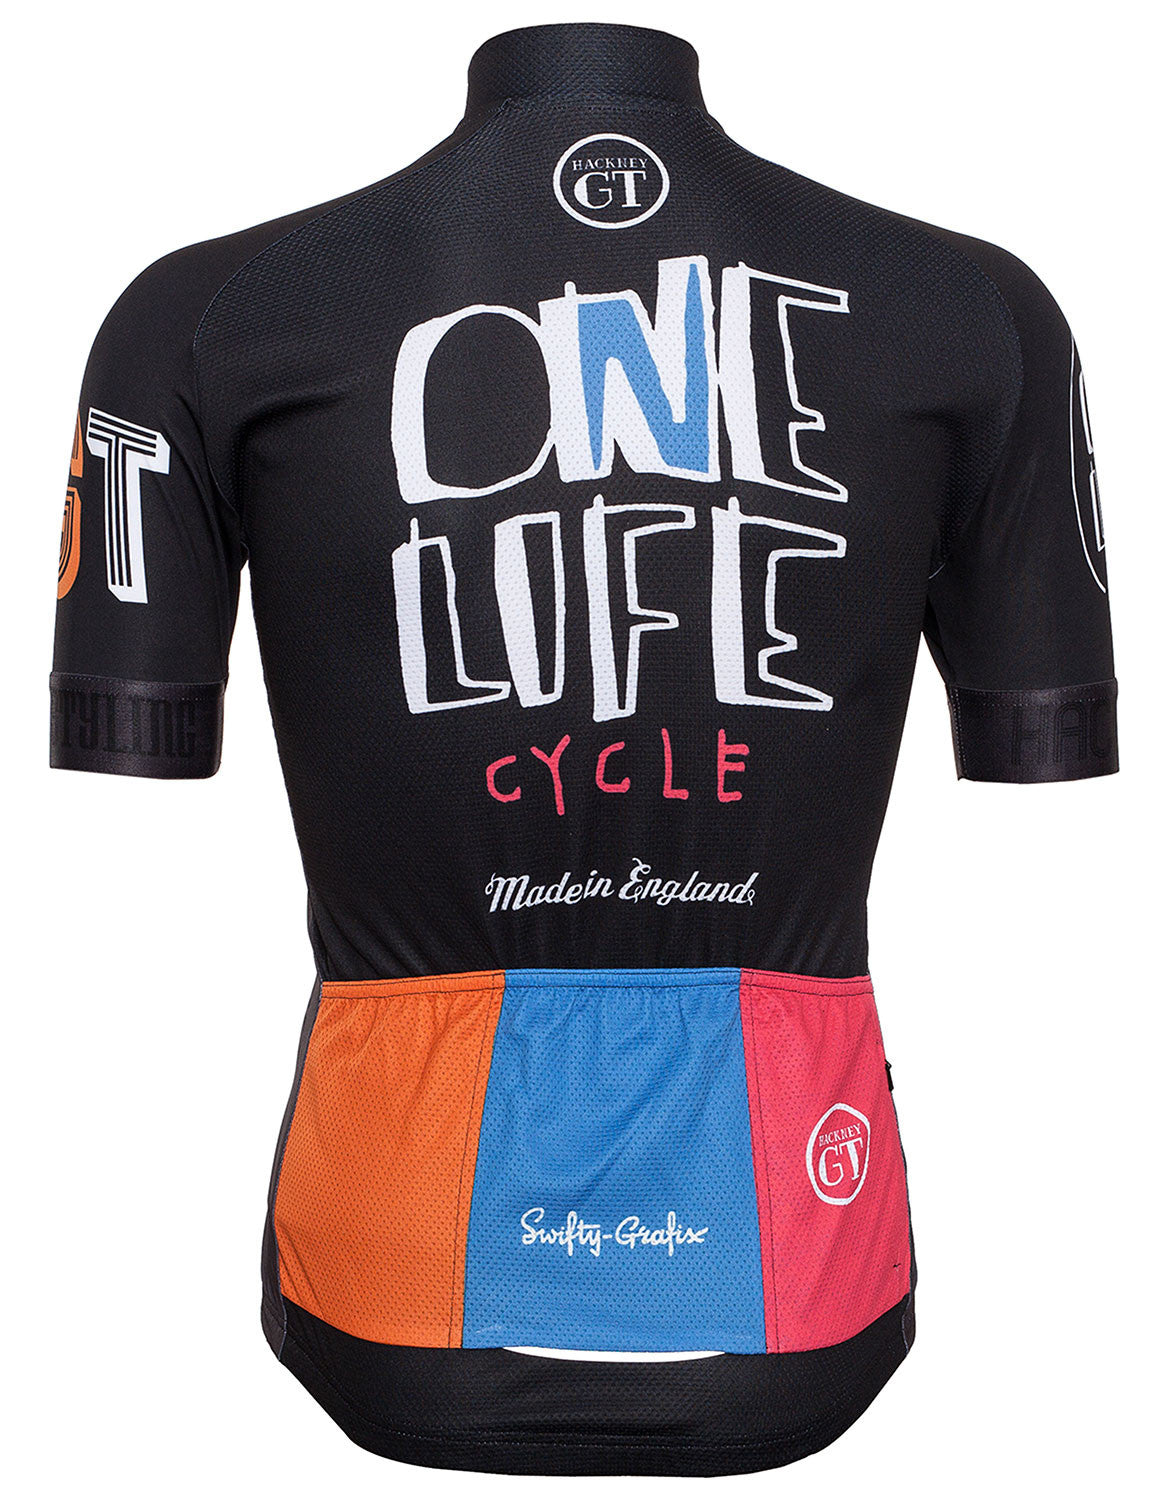 Hackney GT One Life Cycle jersey rear